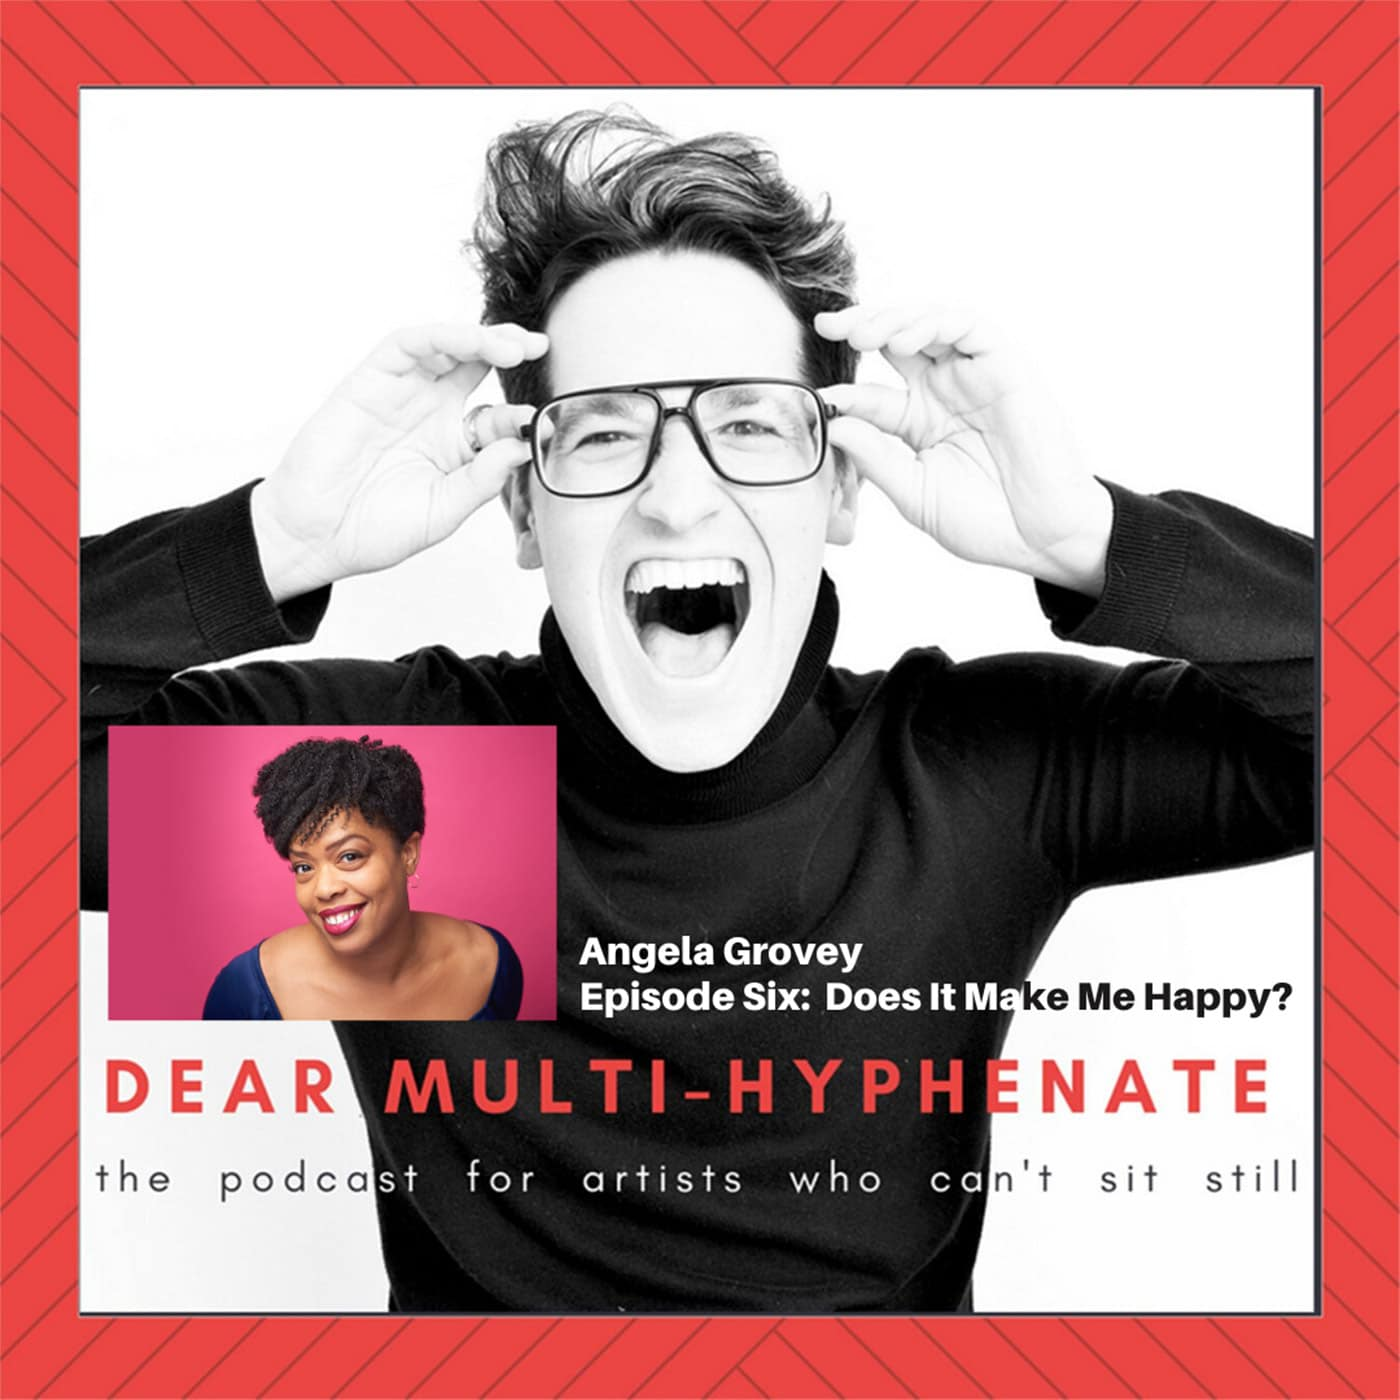 Dear Multi-hyphenate #6 - Angela Grovey: Does It Make Me Happy?